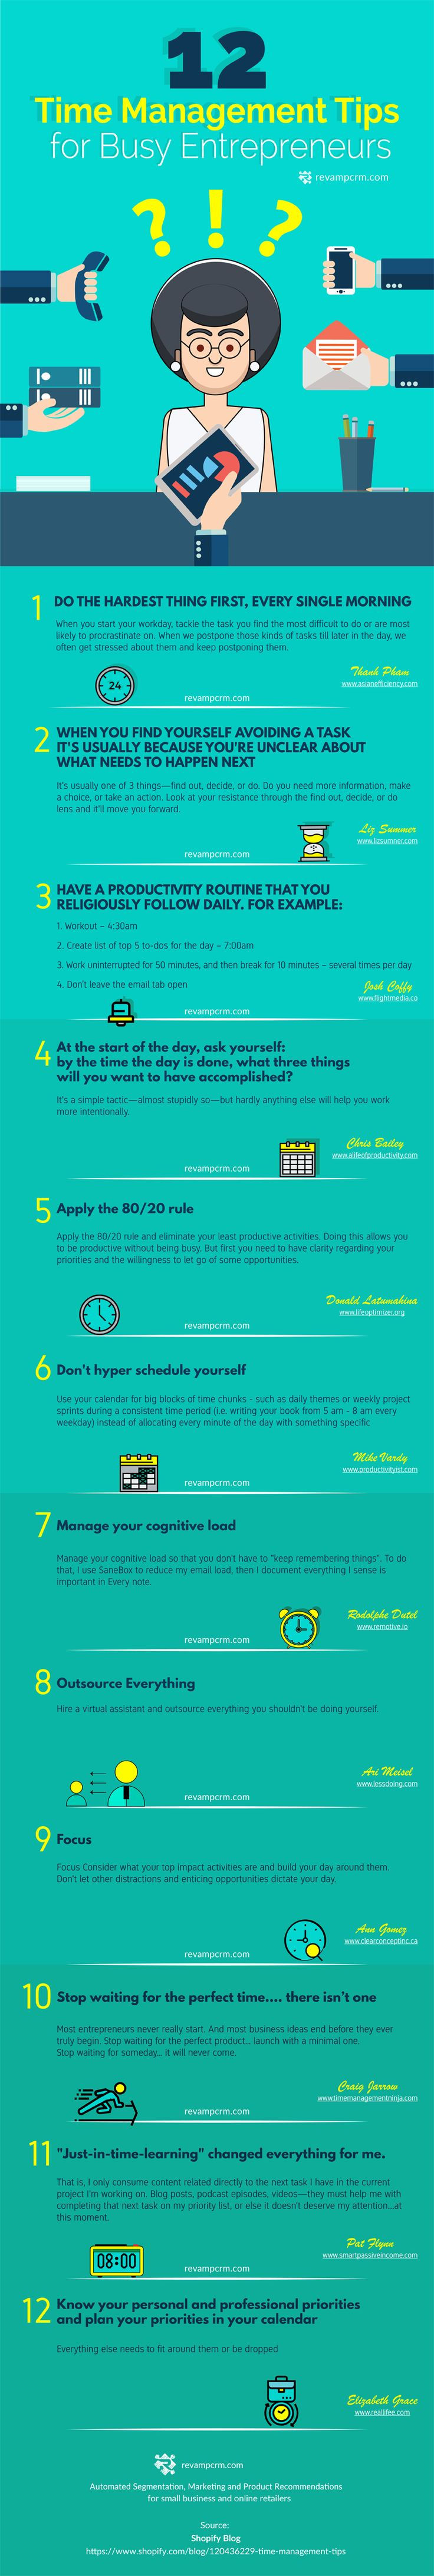 How Can Busy Entrepreneurs Manage Their Time Efficiently? - Infographic